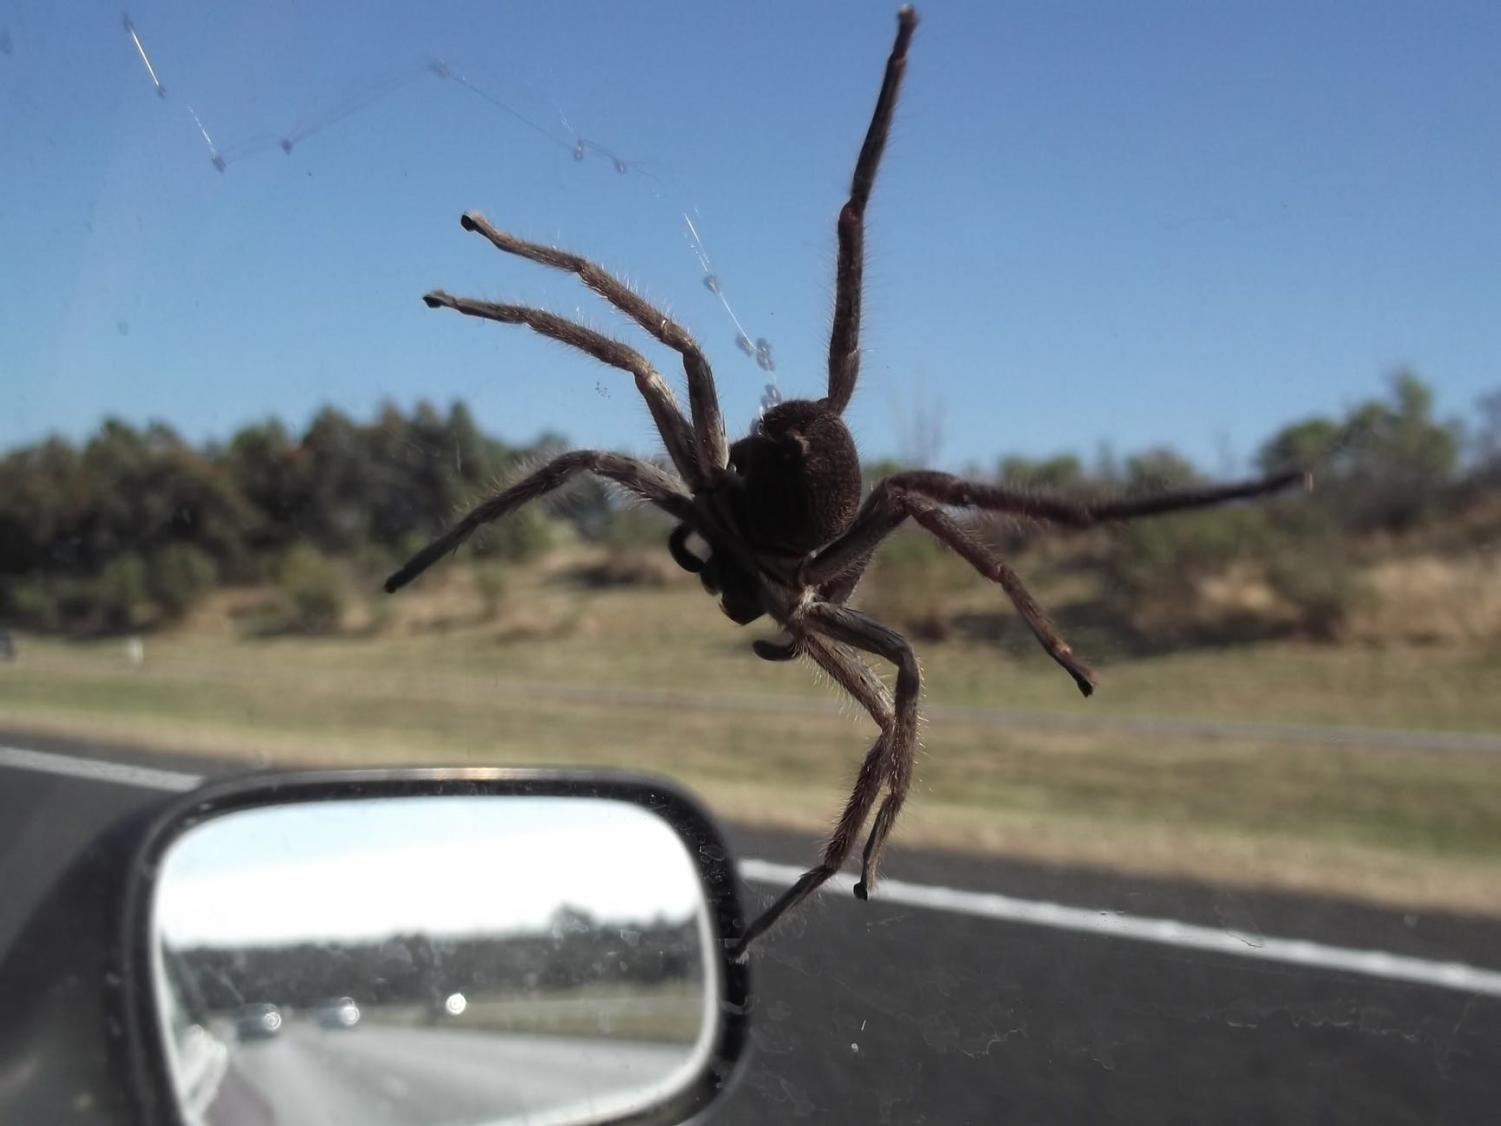 What would you do if you saw a spider crawling around in your car?